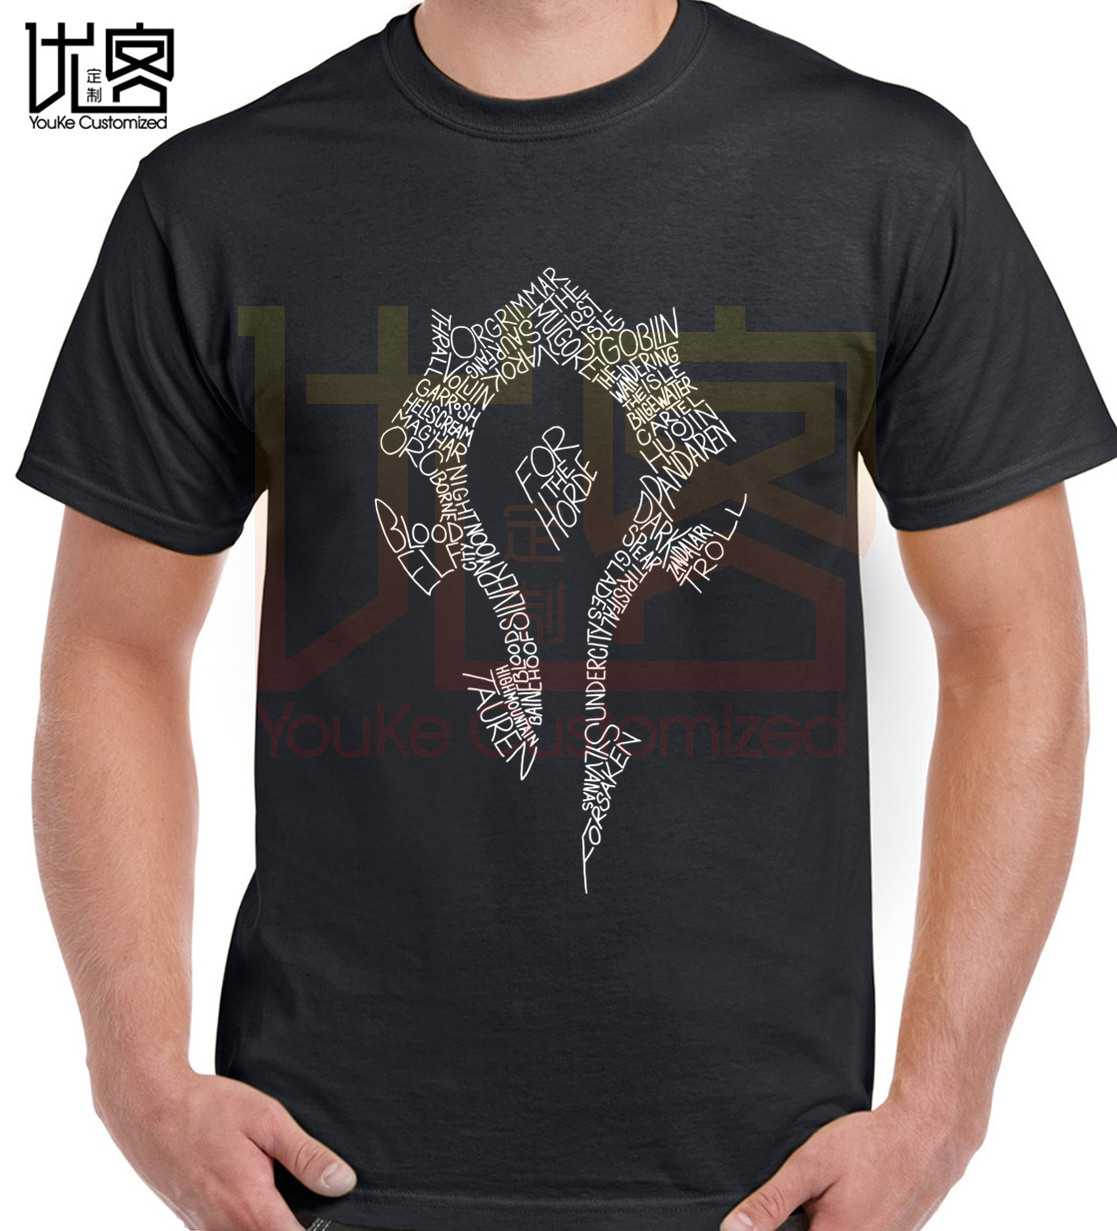 For The Horde Horde Symbol World Of Warcraft T Shirt Horde T Shirt Men S Women S 100 Cotton Short Sleeves Tops Tee T Shirts Aliexpress If you're in search of the best horde symbol wallpaper, you've come to the right place. for the horde horde symbol world of warcraft t shirt horde t shirt men s women s 100 cotton short sleeves tops tee